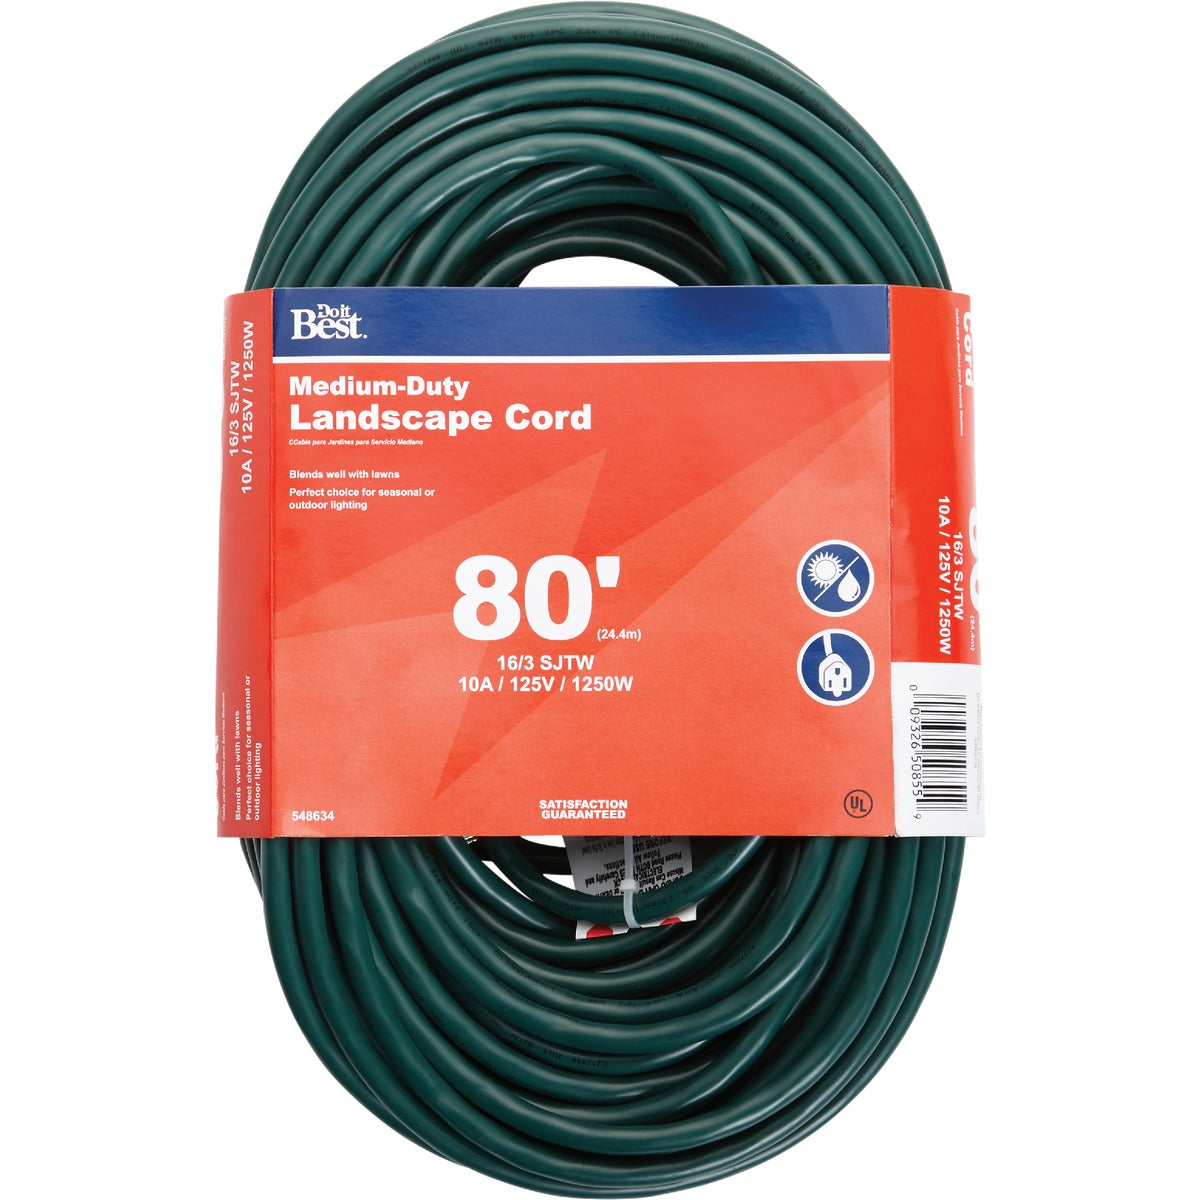 80' 16/3 GREEN EXT CORD - OU-JTW163-80X-GR by Do it Best